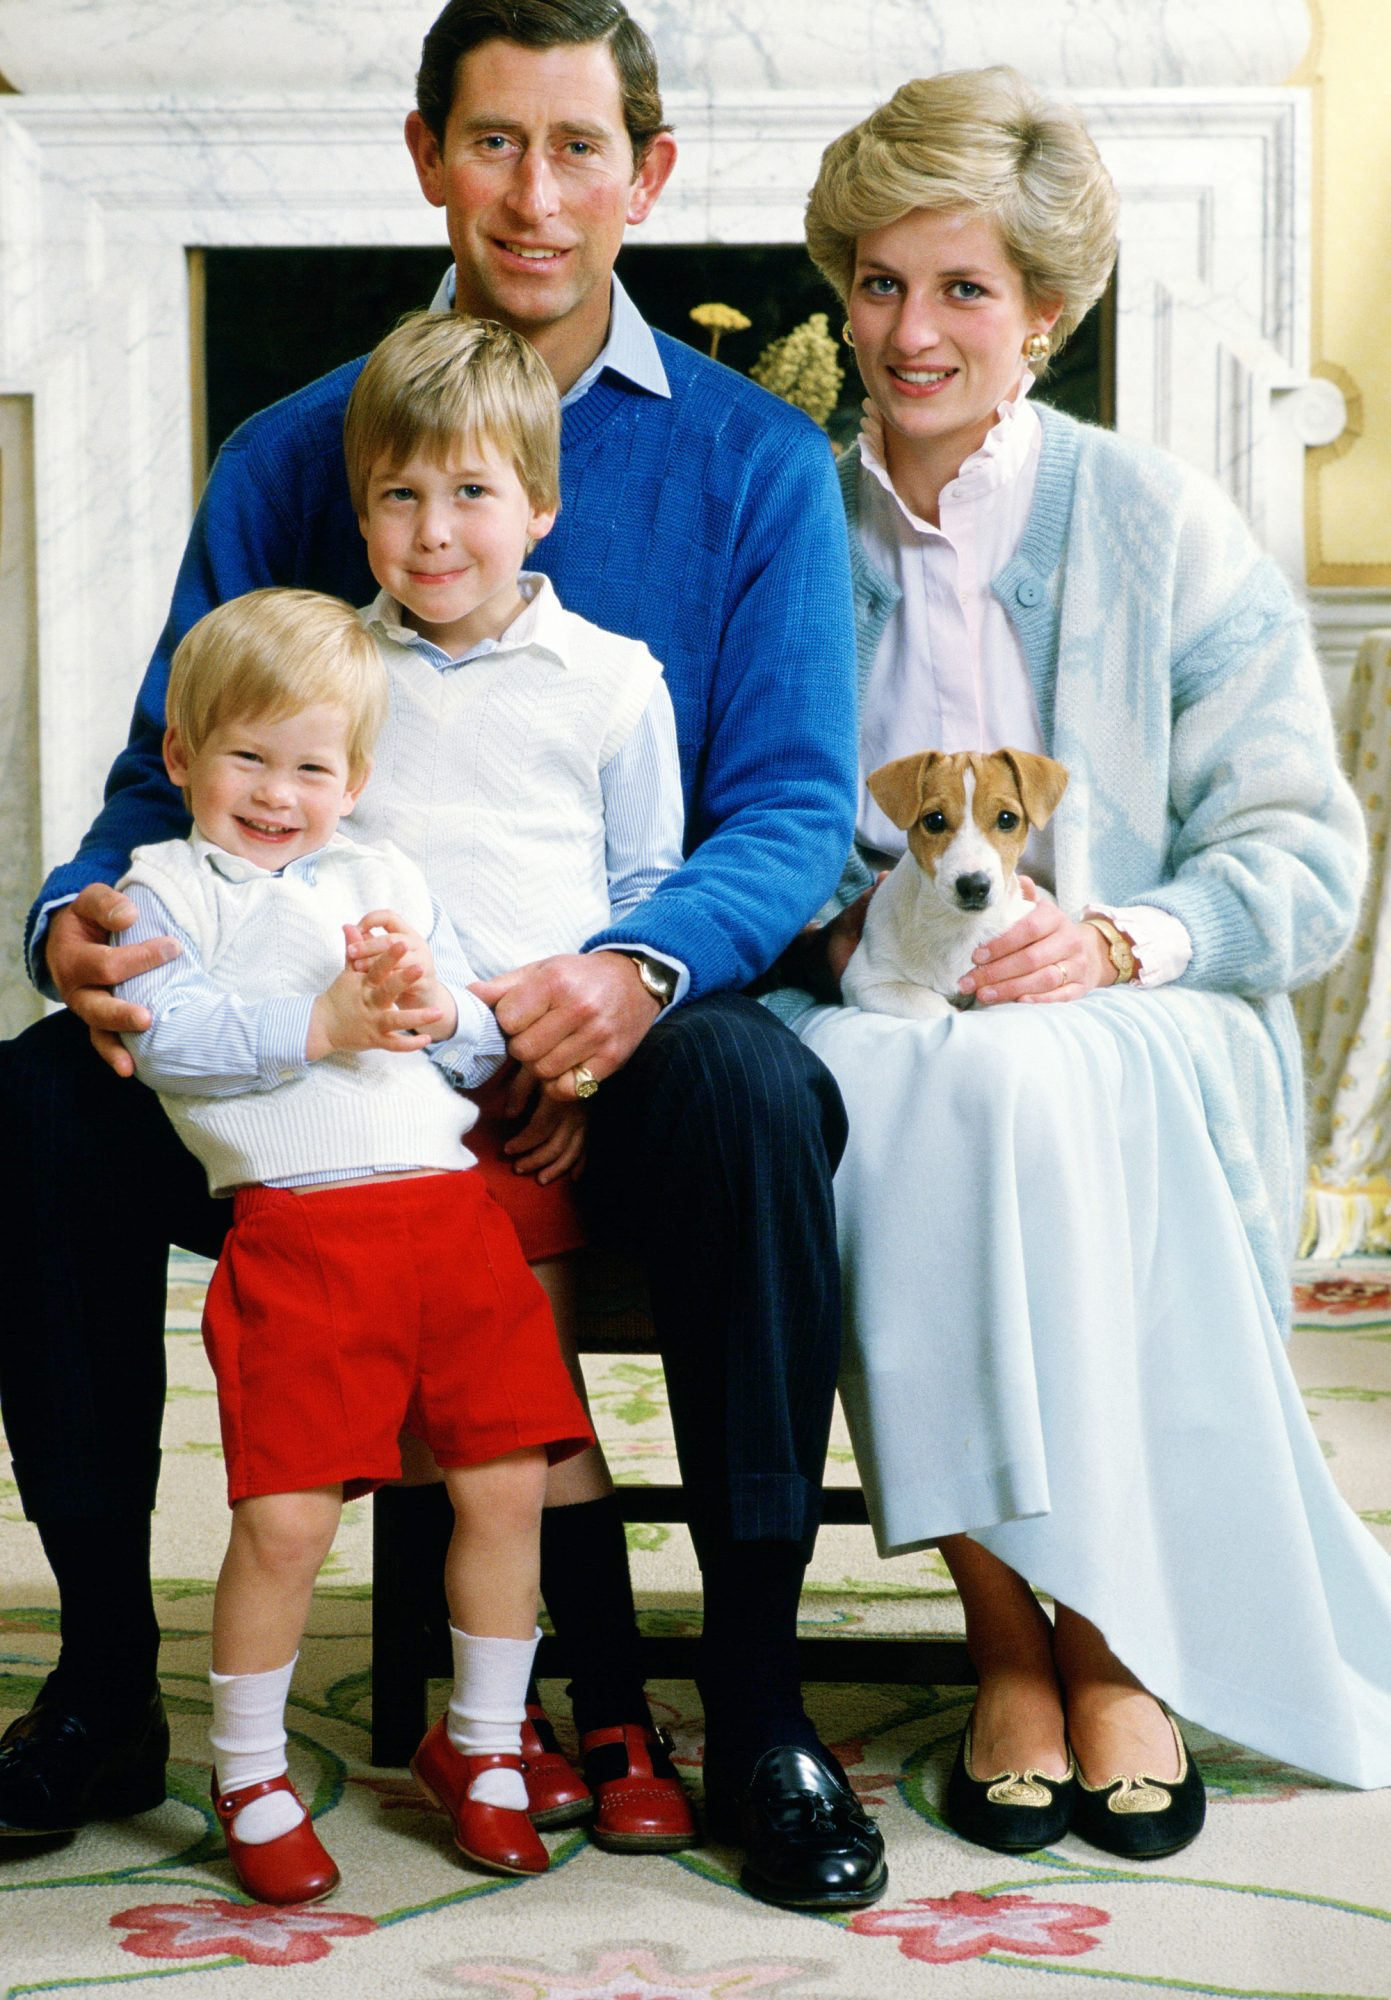 7 Things You Didn't Know About the Royal Family's Eating Habits